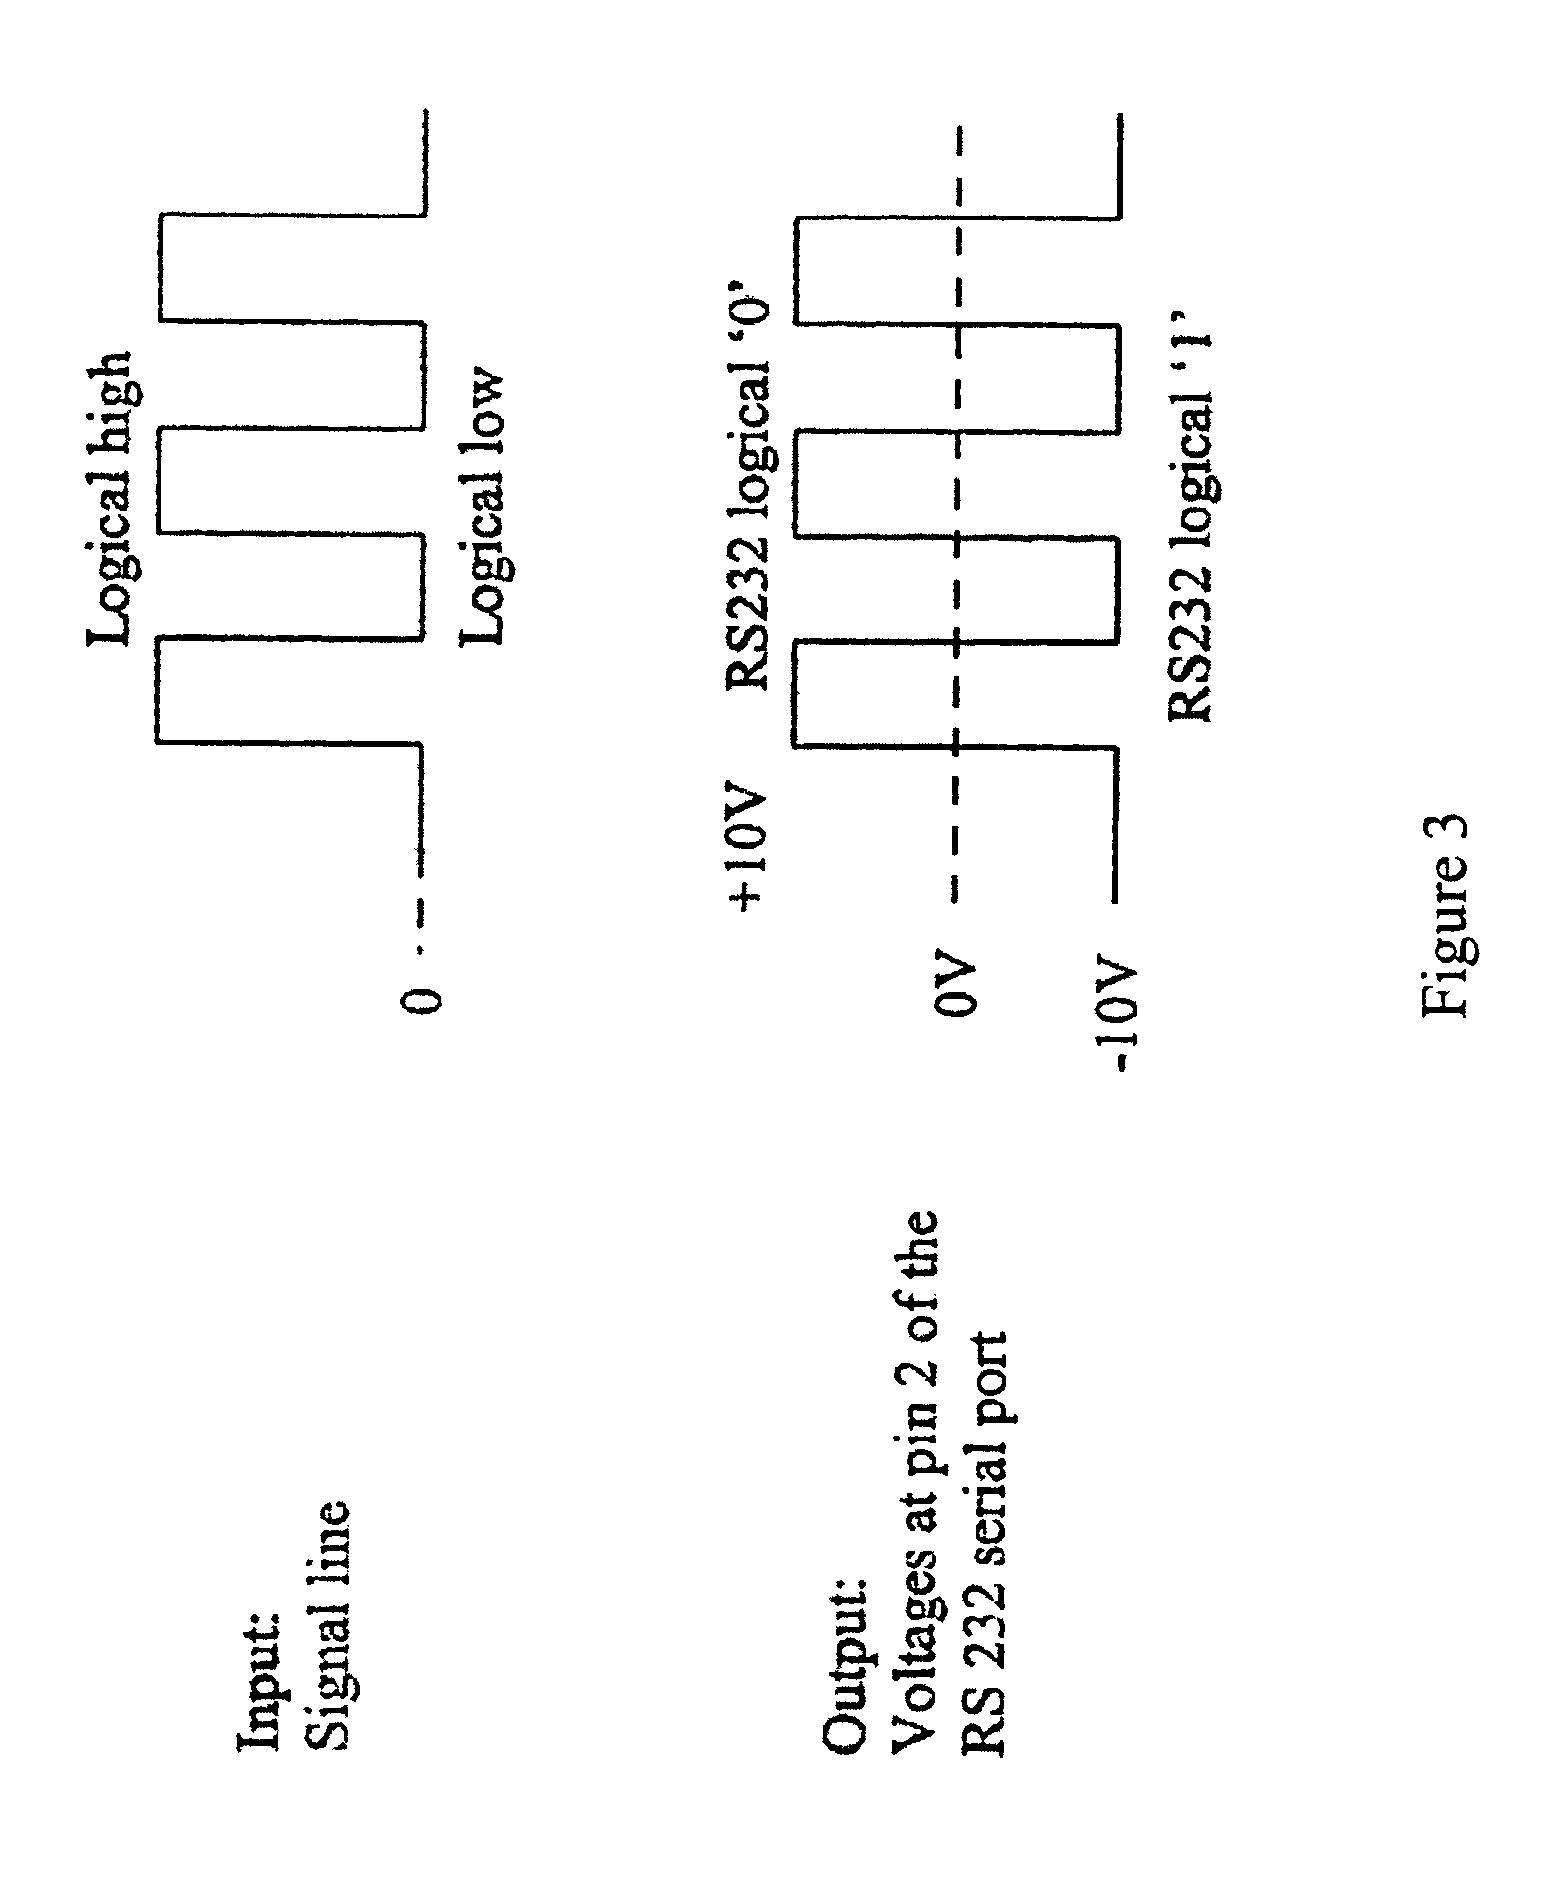 Patent Us8097841 Conversion Circuit For Converting Data Of Signal Photodiodes Conditioning Ic Drawing